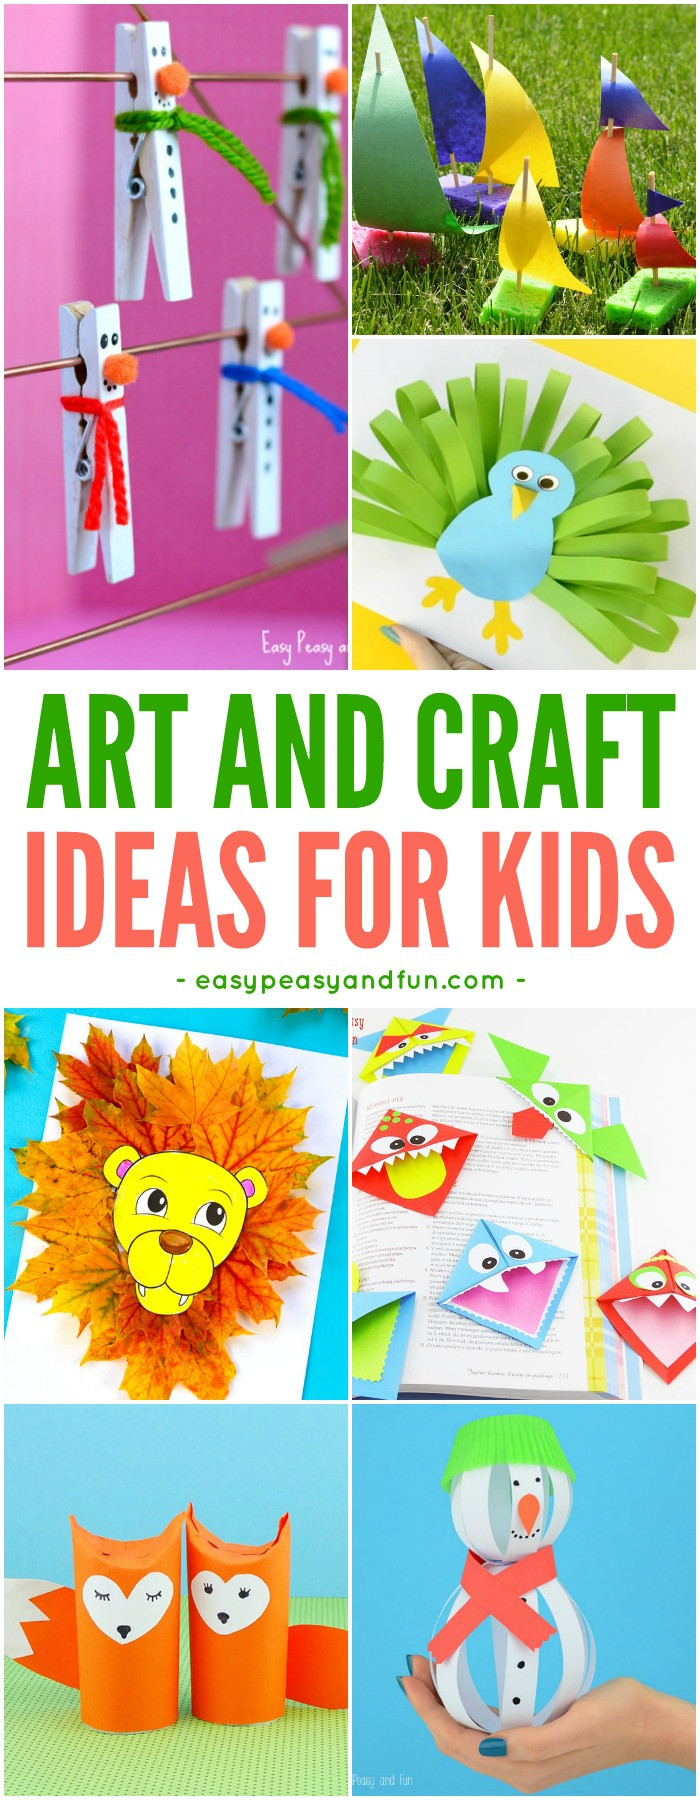 Best ideas about Arts & Crafts For Kids . Save or Pin Crafts For Kids Tons of Art and Craft Ideas for Kids to Now.